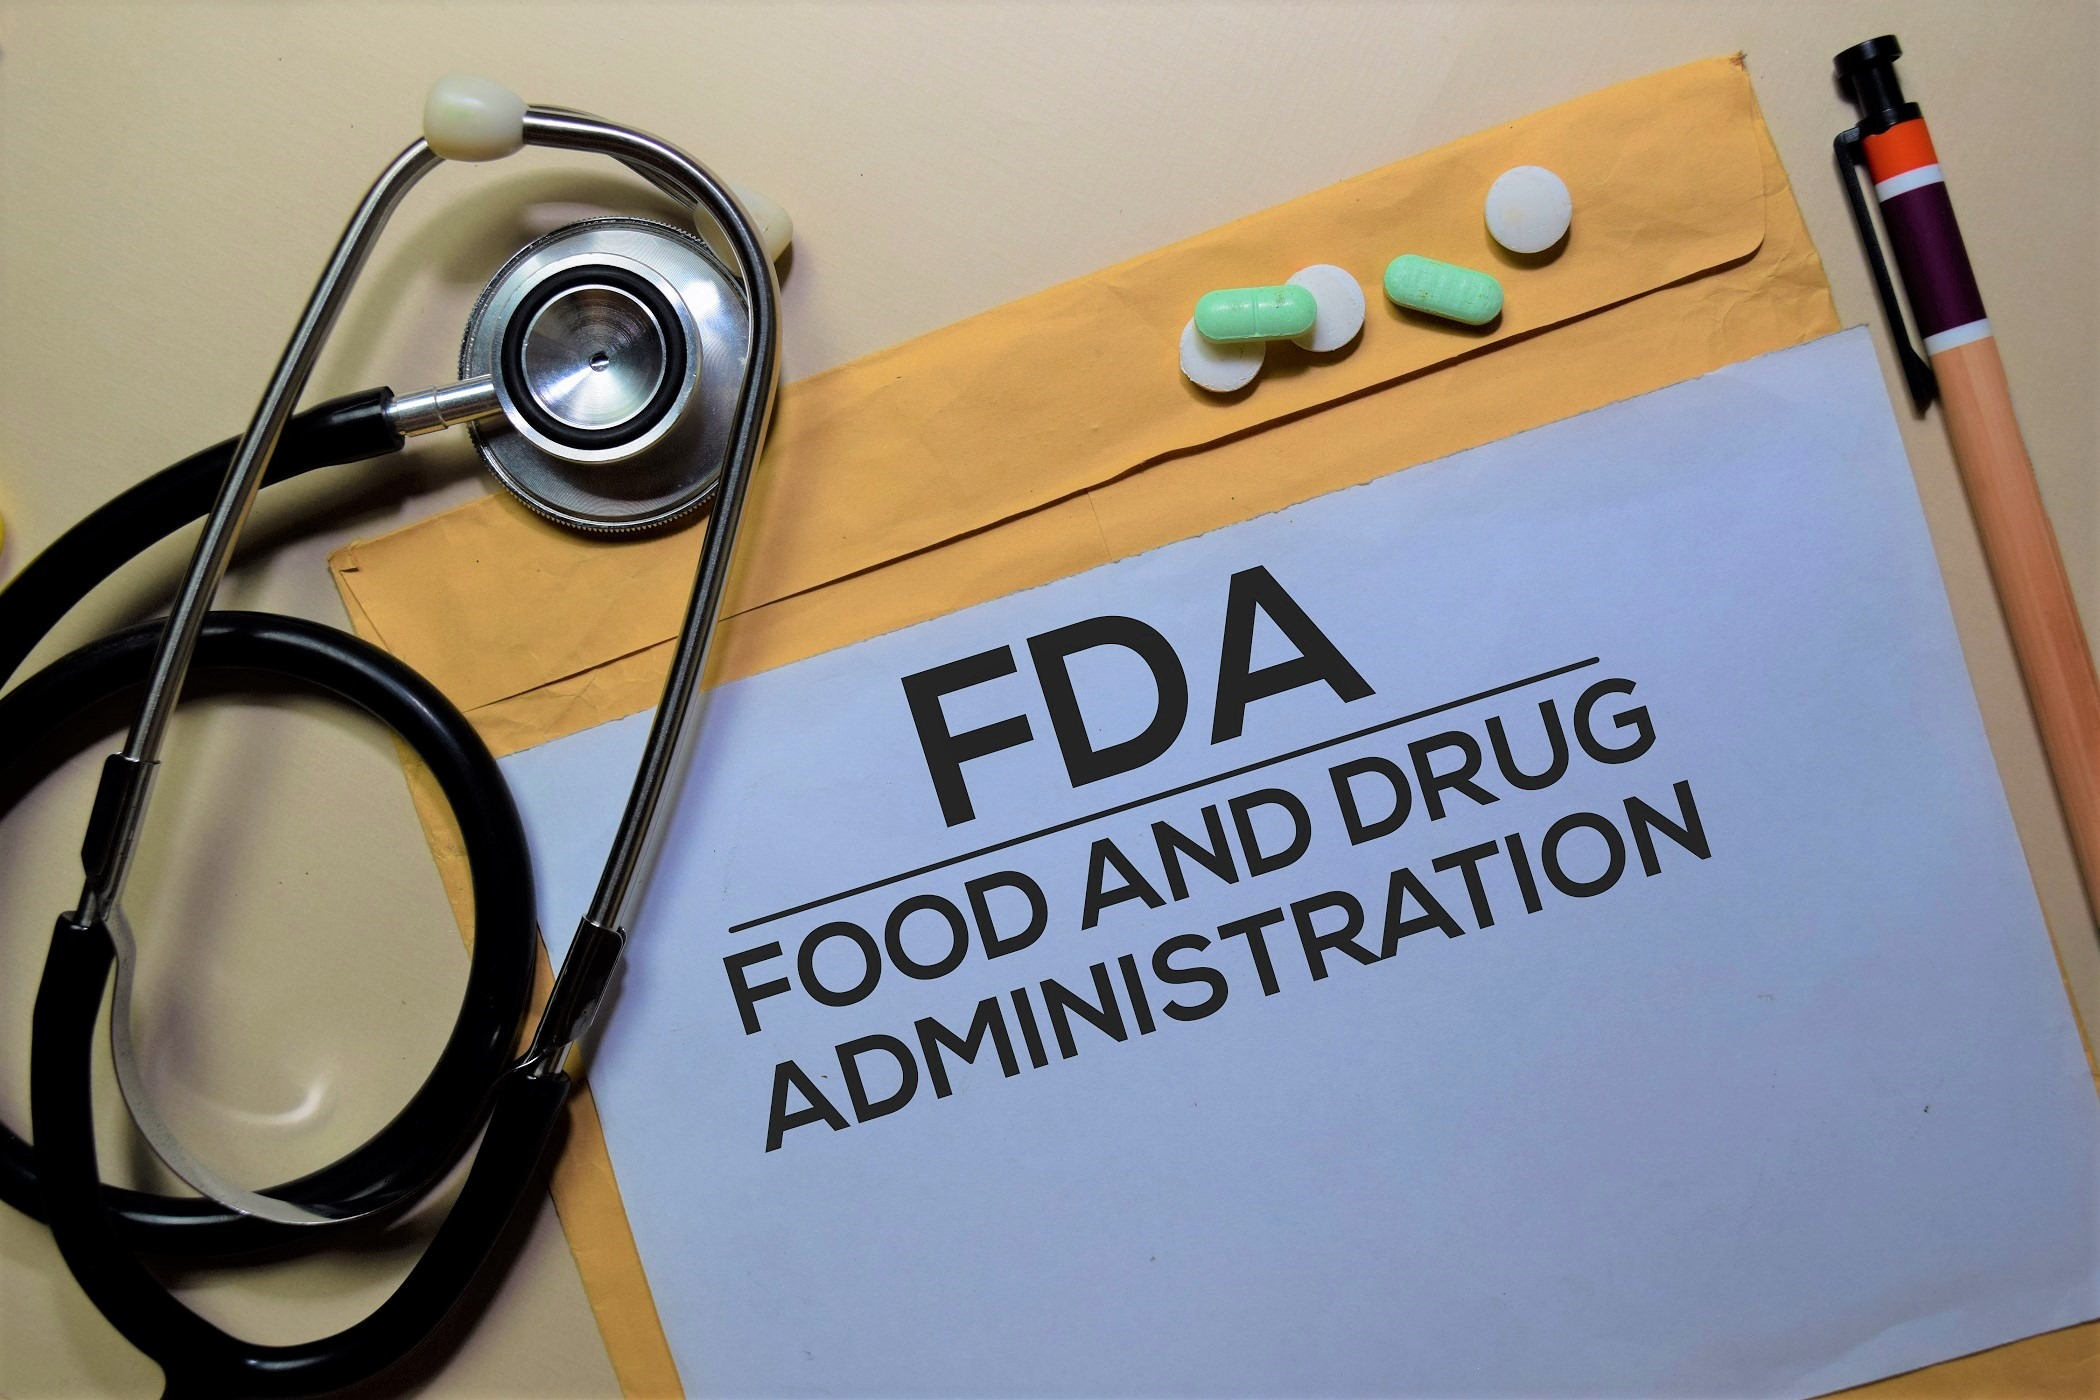 FDA warns 25 companies to stop producing fake regulatory certificates for medical devices